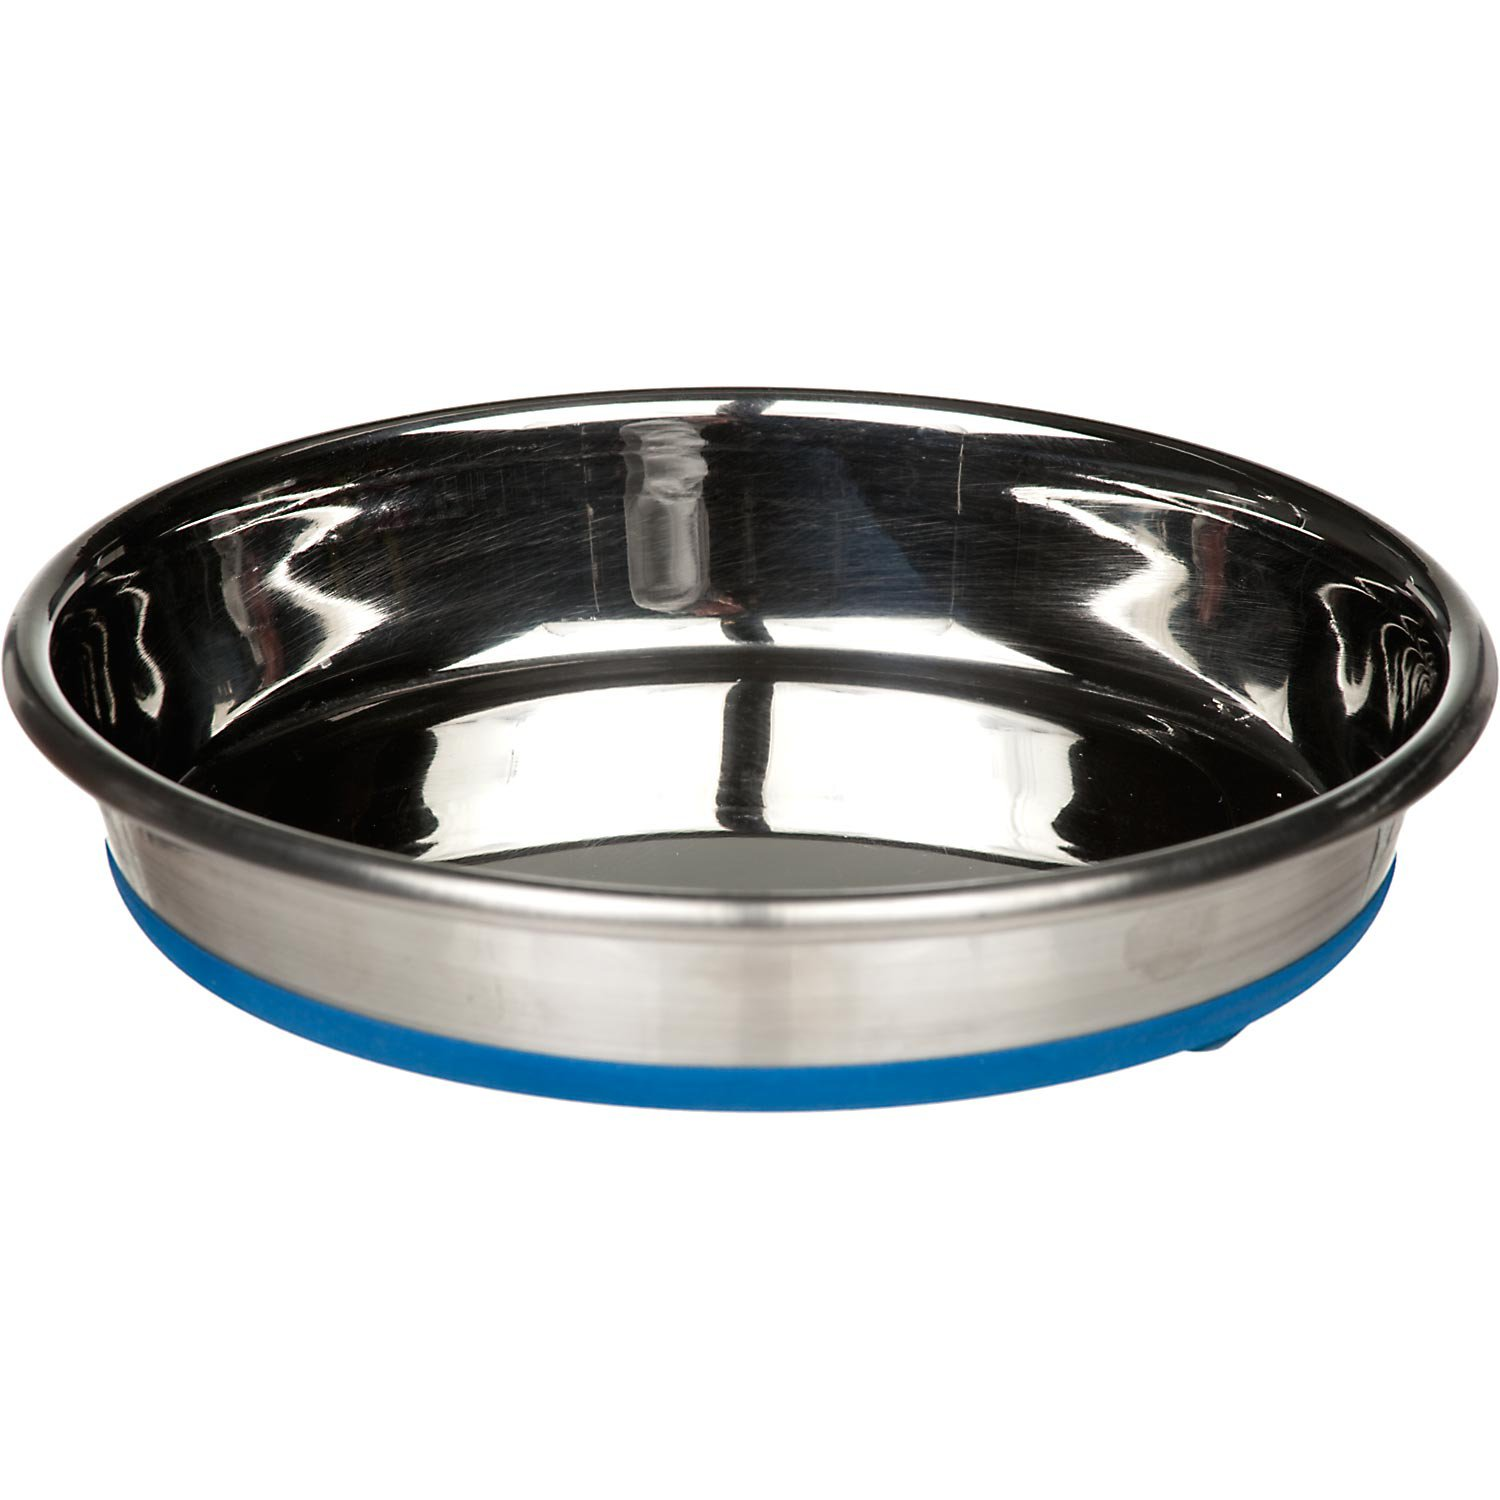 Decorative Dog Bowls Cat Feeding Supplies Bowls Water Fountains Petco